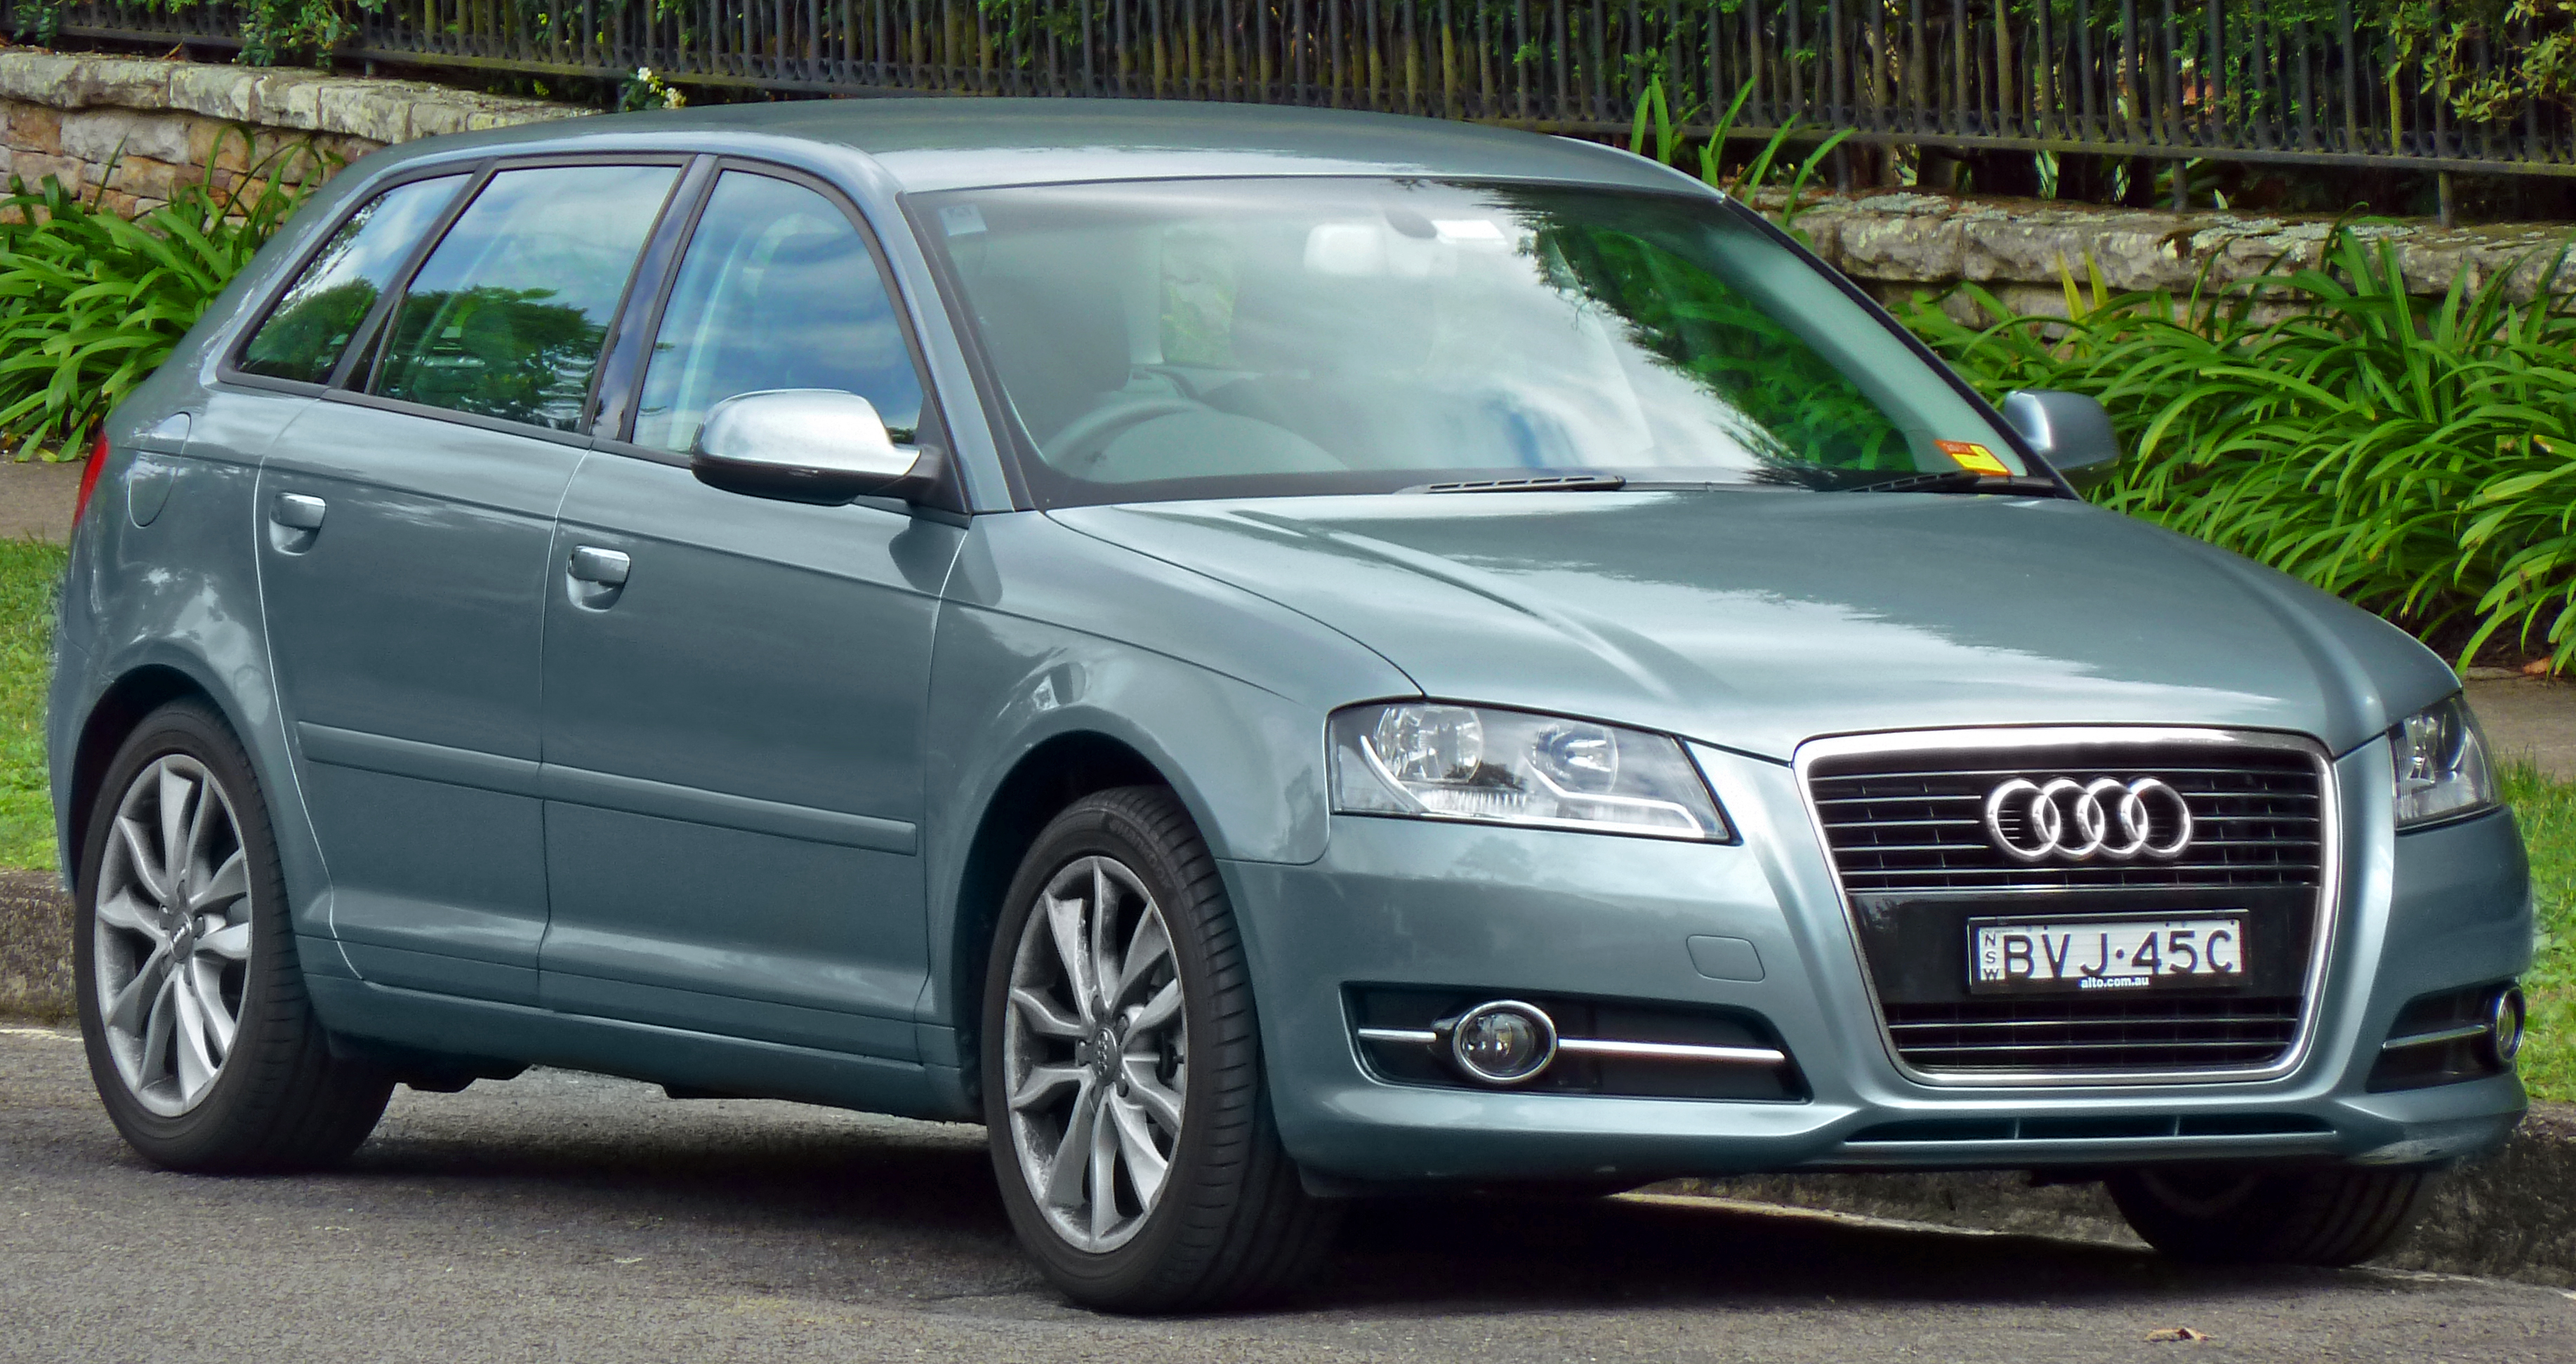 File:2010-2011 Audi A3 (8PA) Ambition 1.8 TFSI 5-door